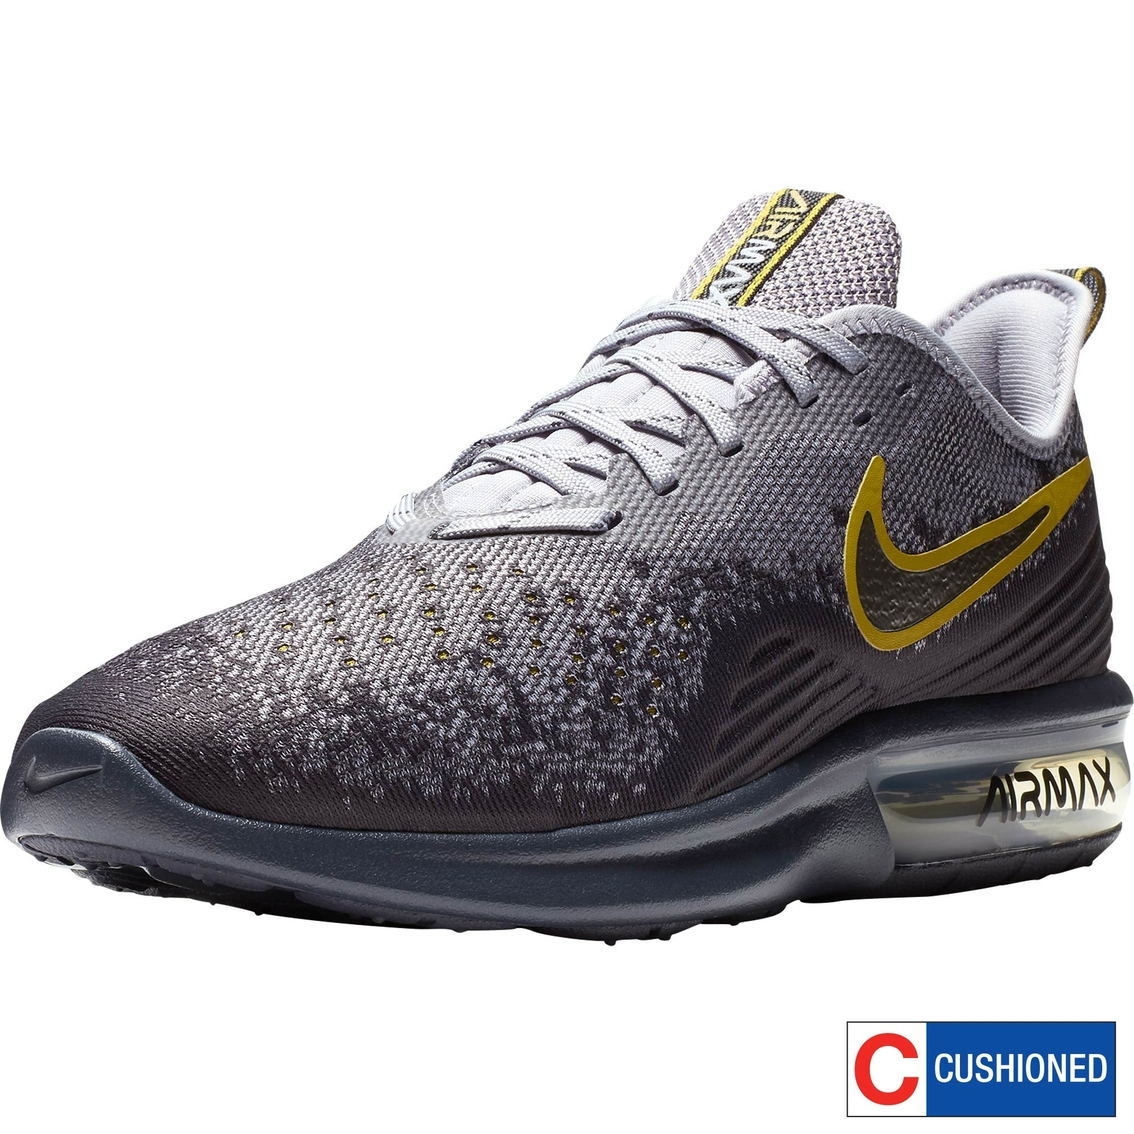 new style 43932 bafe8 Nike Men s Air Max Sequent 4 Running Shoes